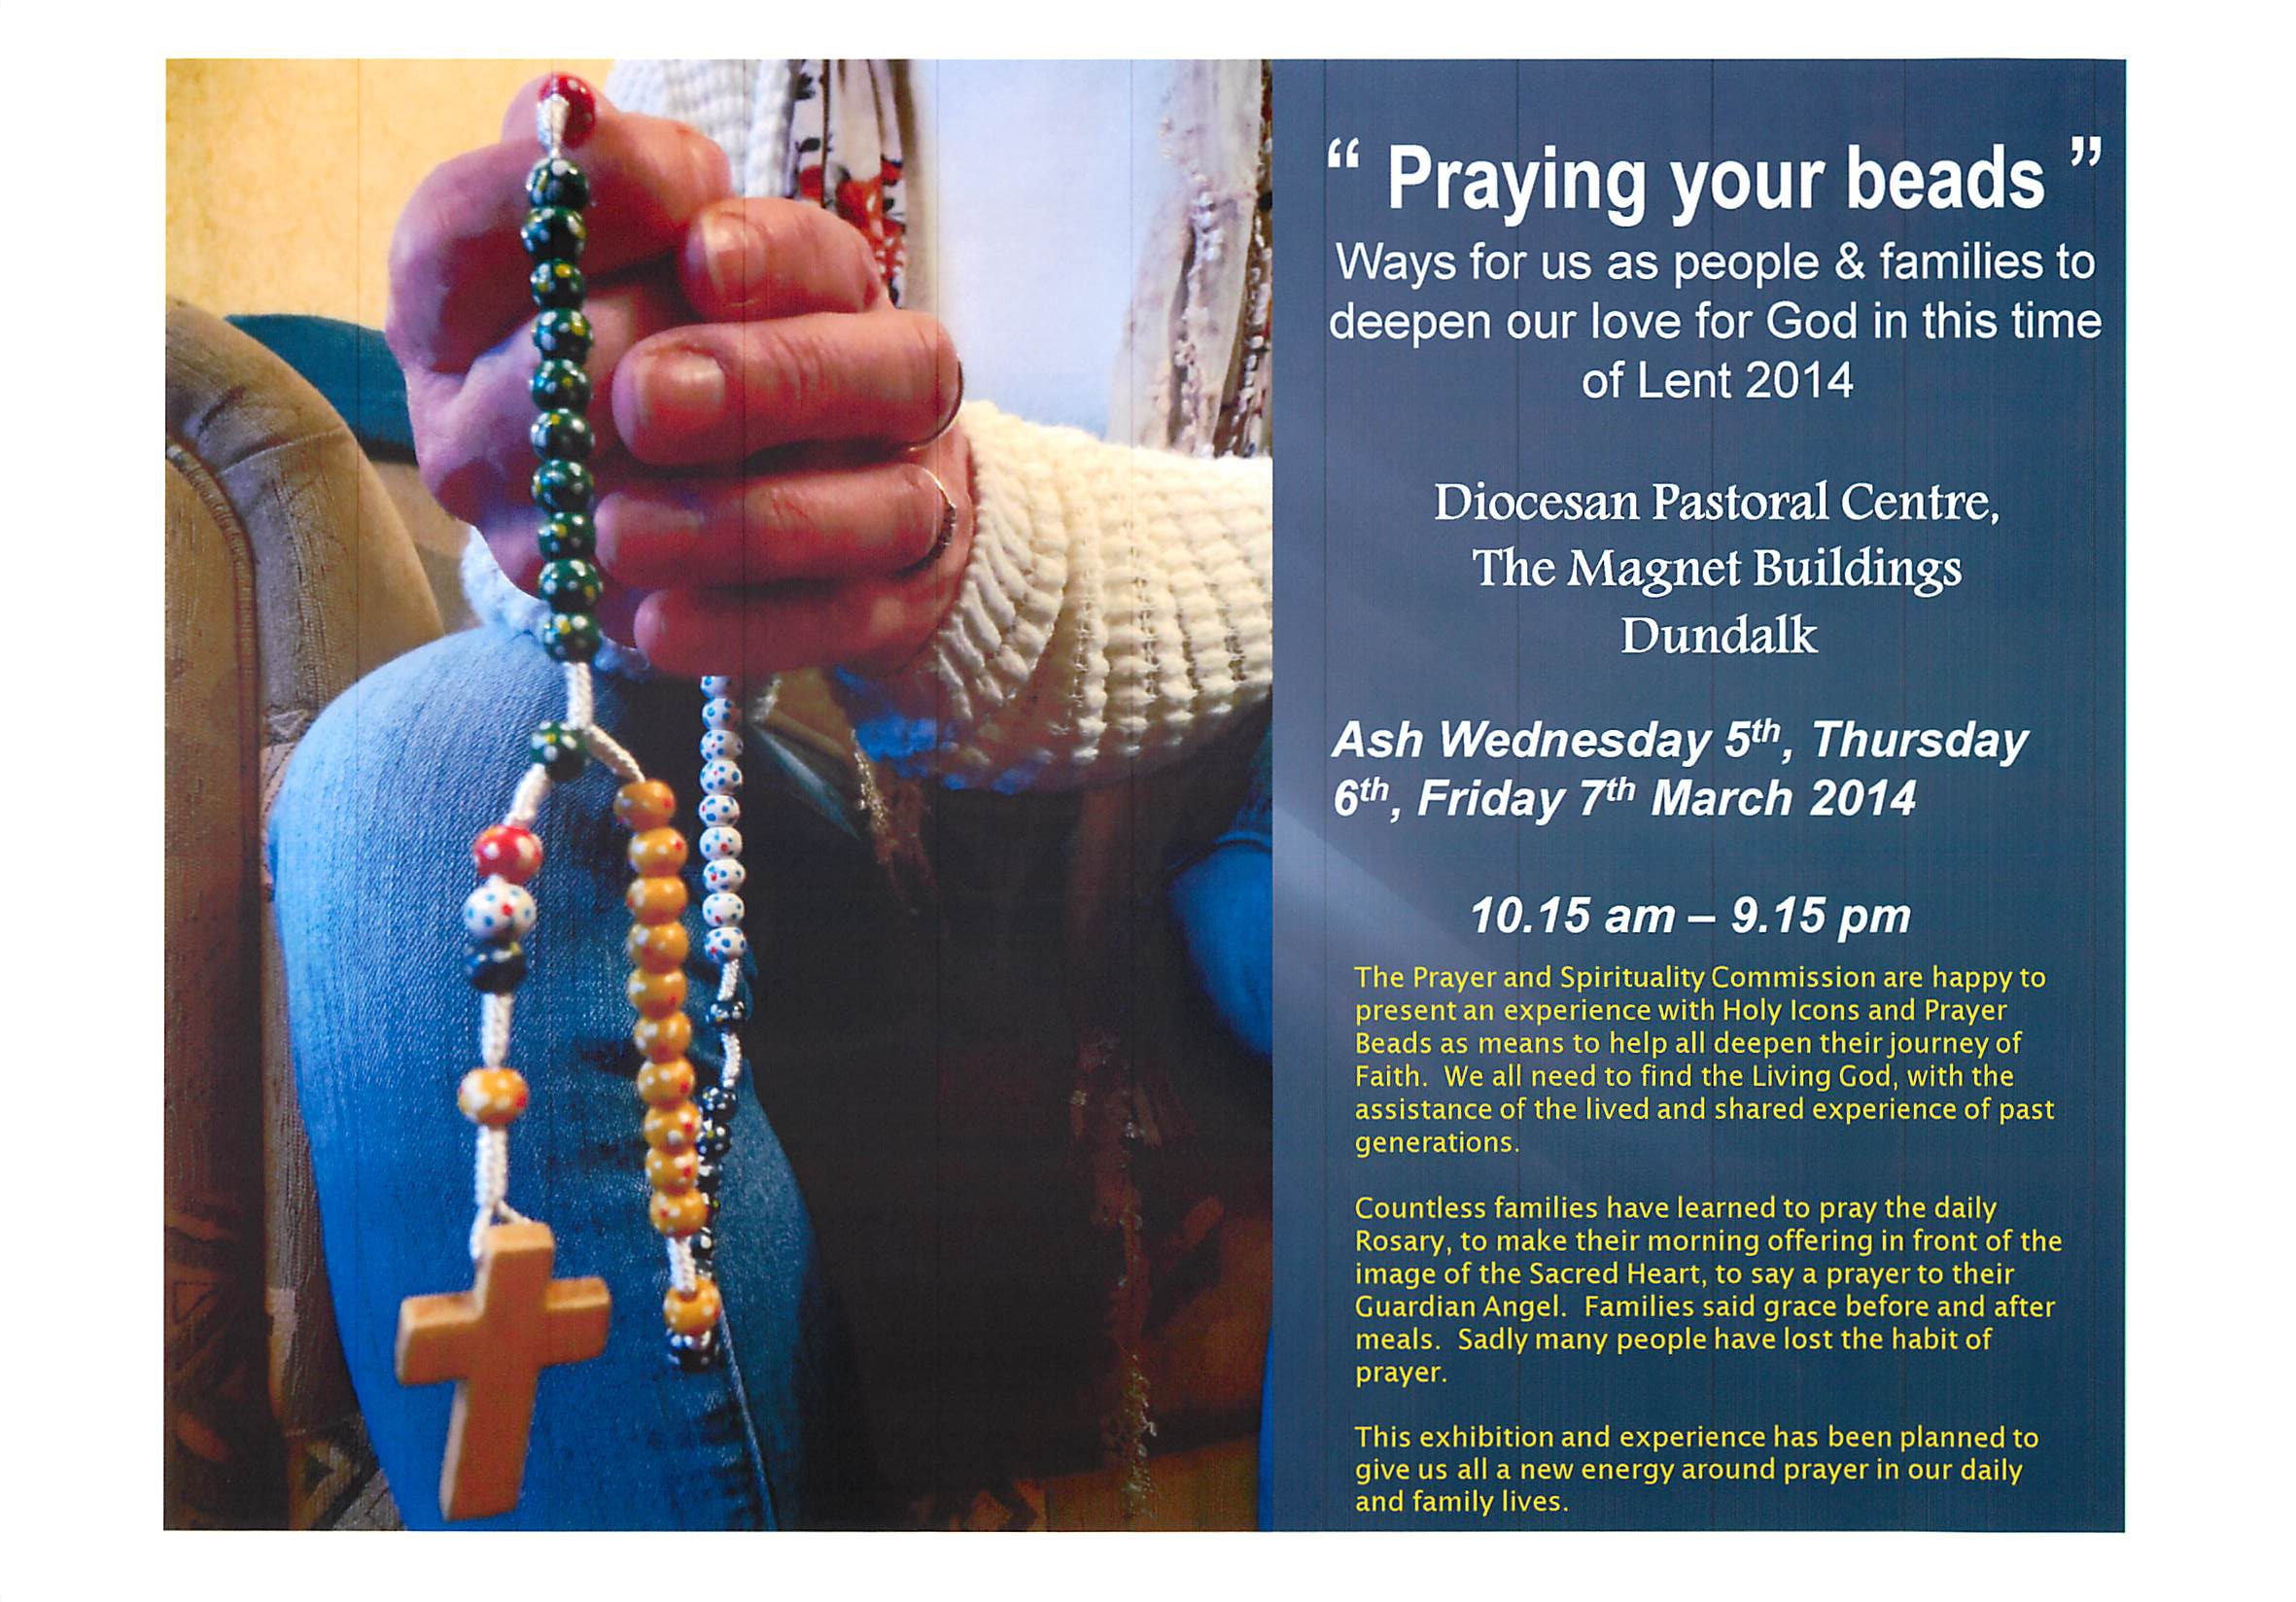 Praying_Your_Beads_Lent2014